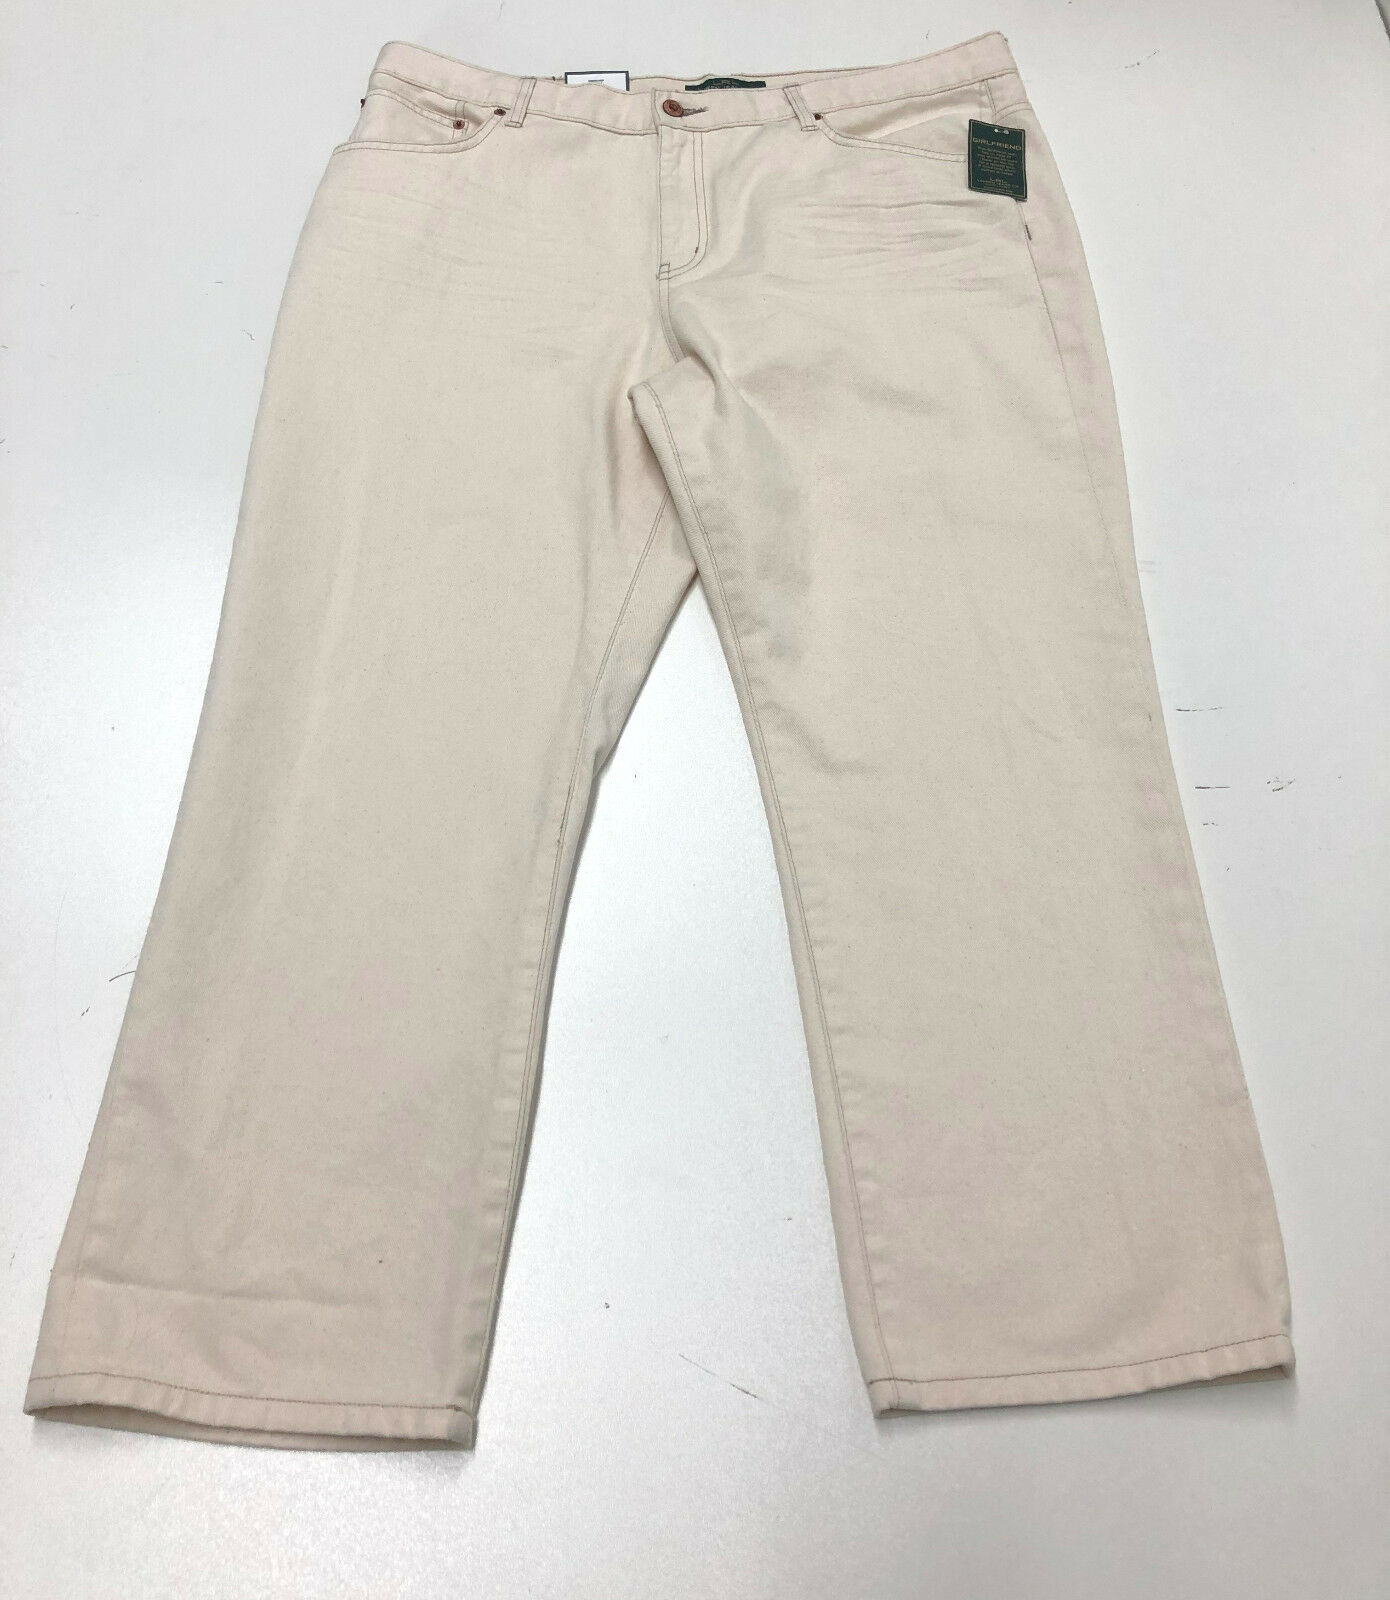 Ralph Lauren Jeans Women Straight Girlfriend Denim Pants Beige Size 16 New